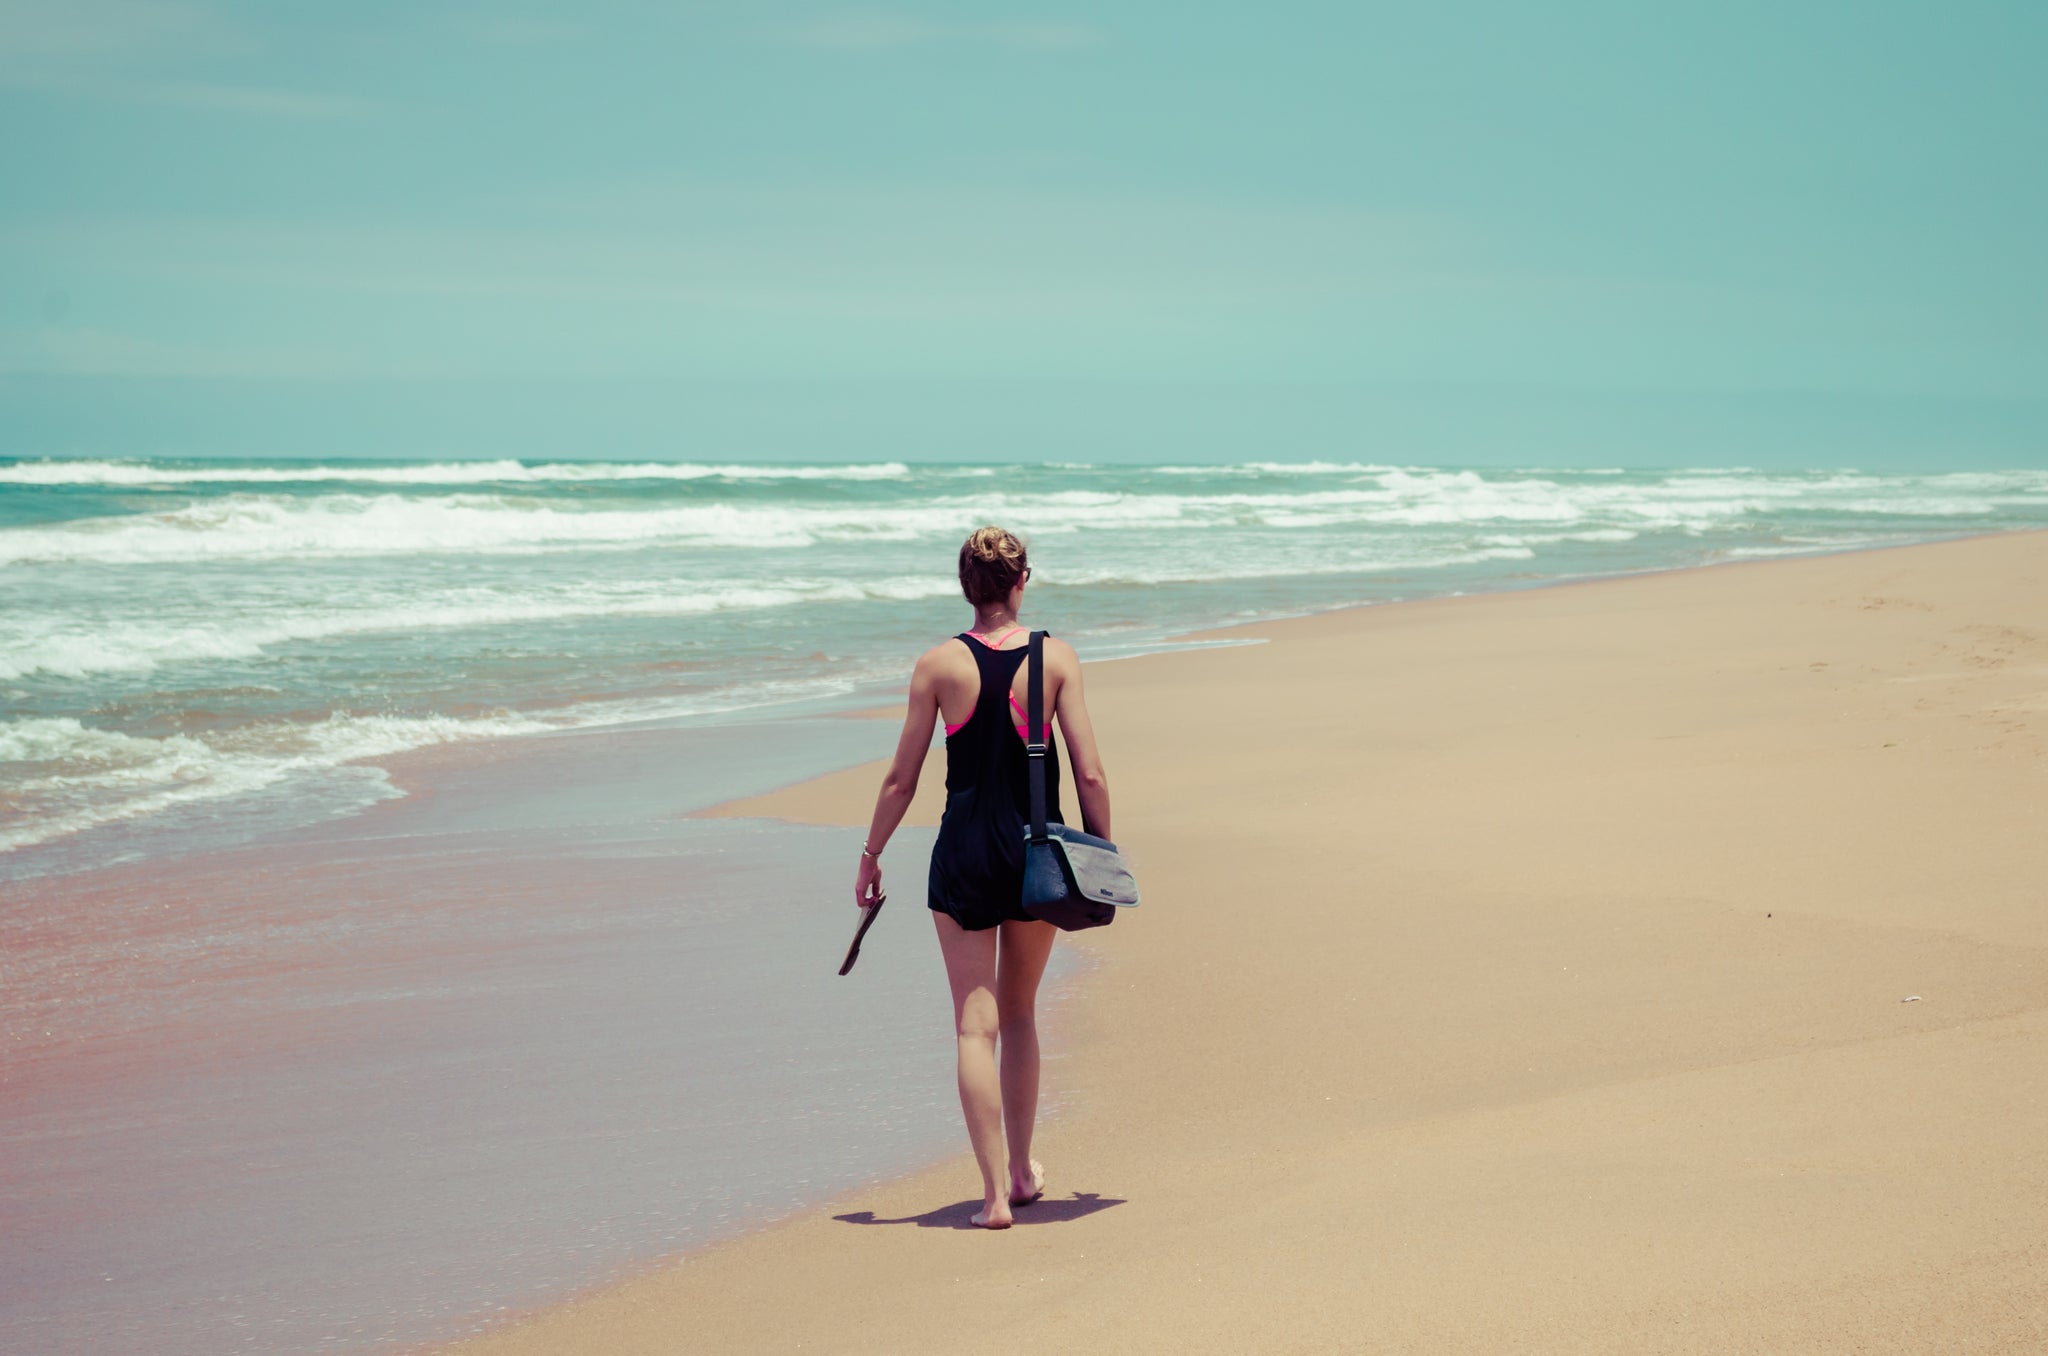 Durban, Winter, South Africa, Best Winter Place, Sun, Beach, Walk